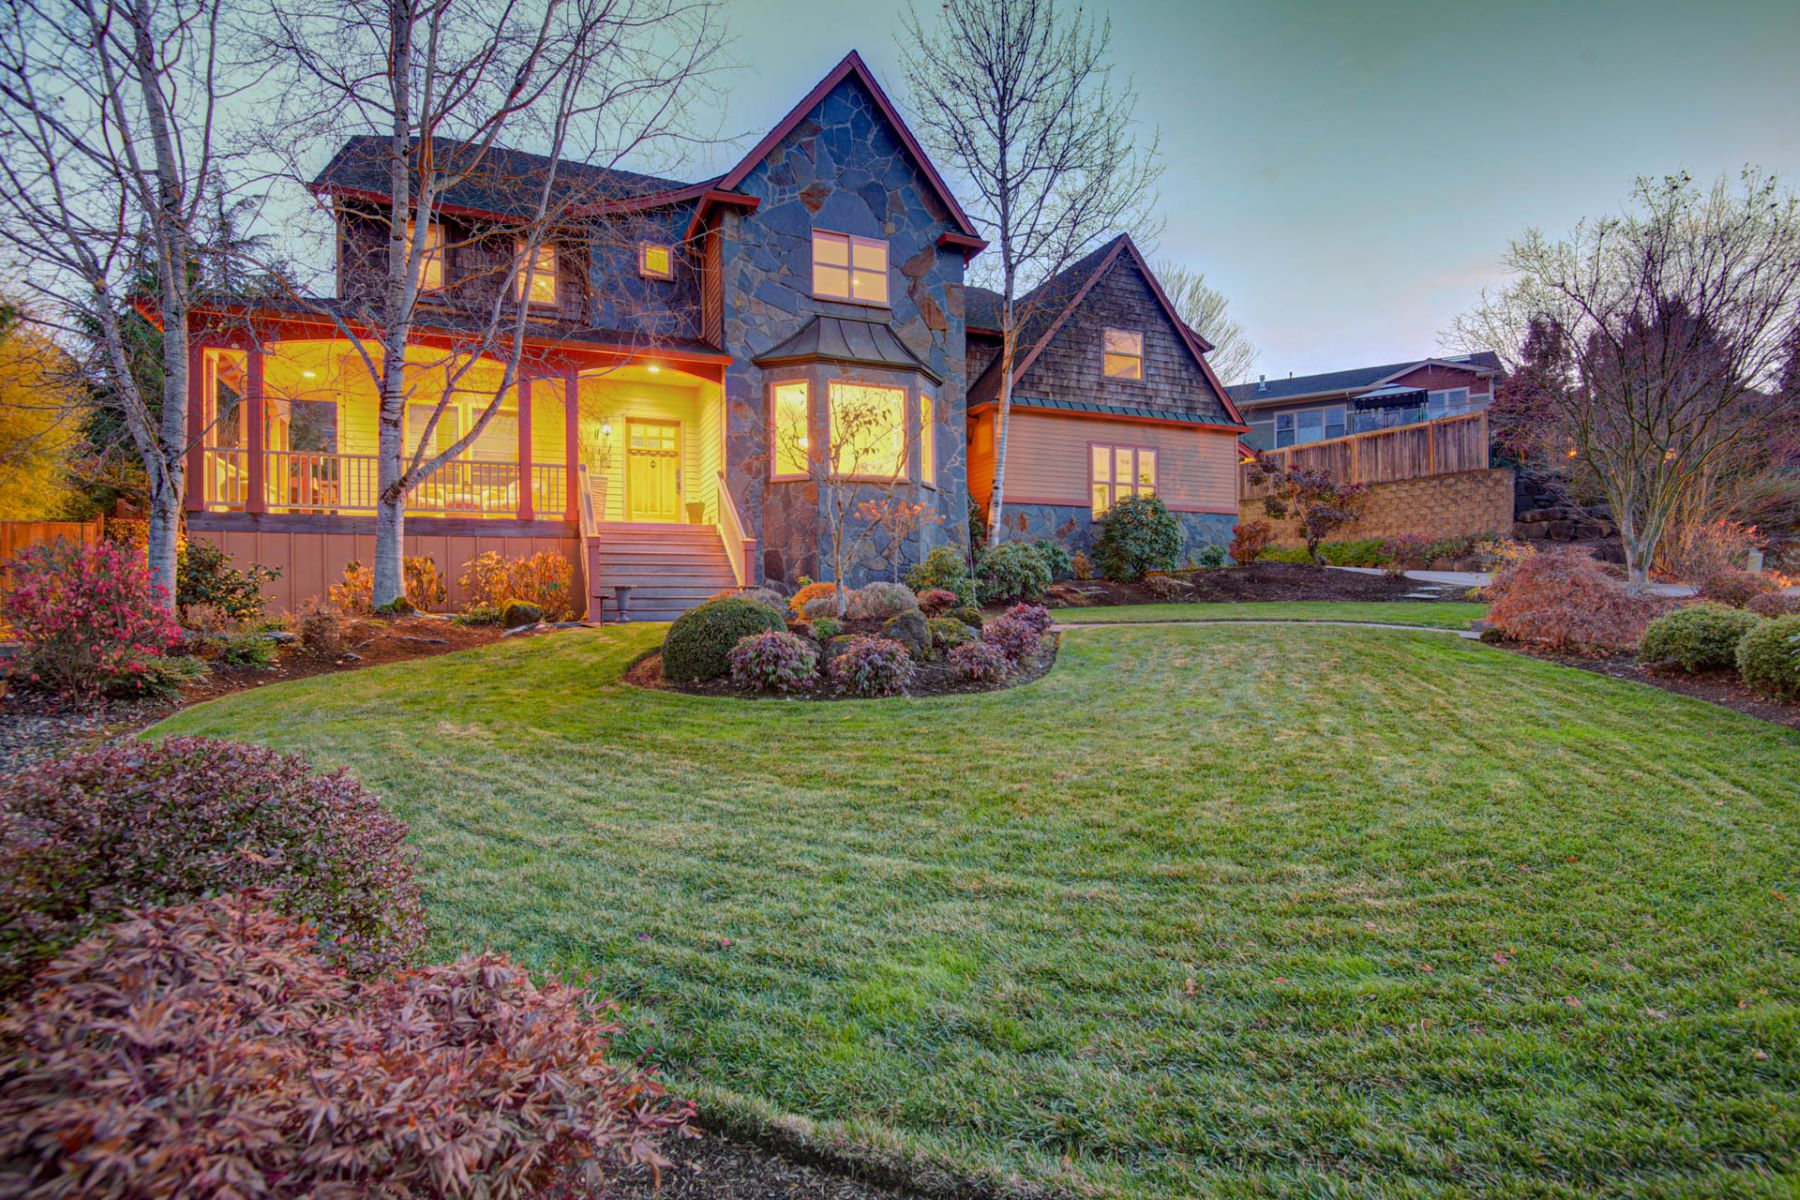 Single Family Homes for Sale at Stunning Luxury Estate! 5113 NW 143rd St Vancouver, Washington 98685 United States